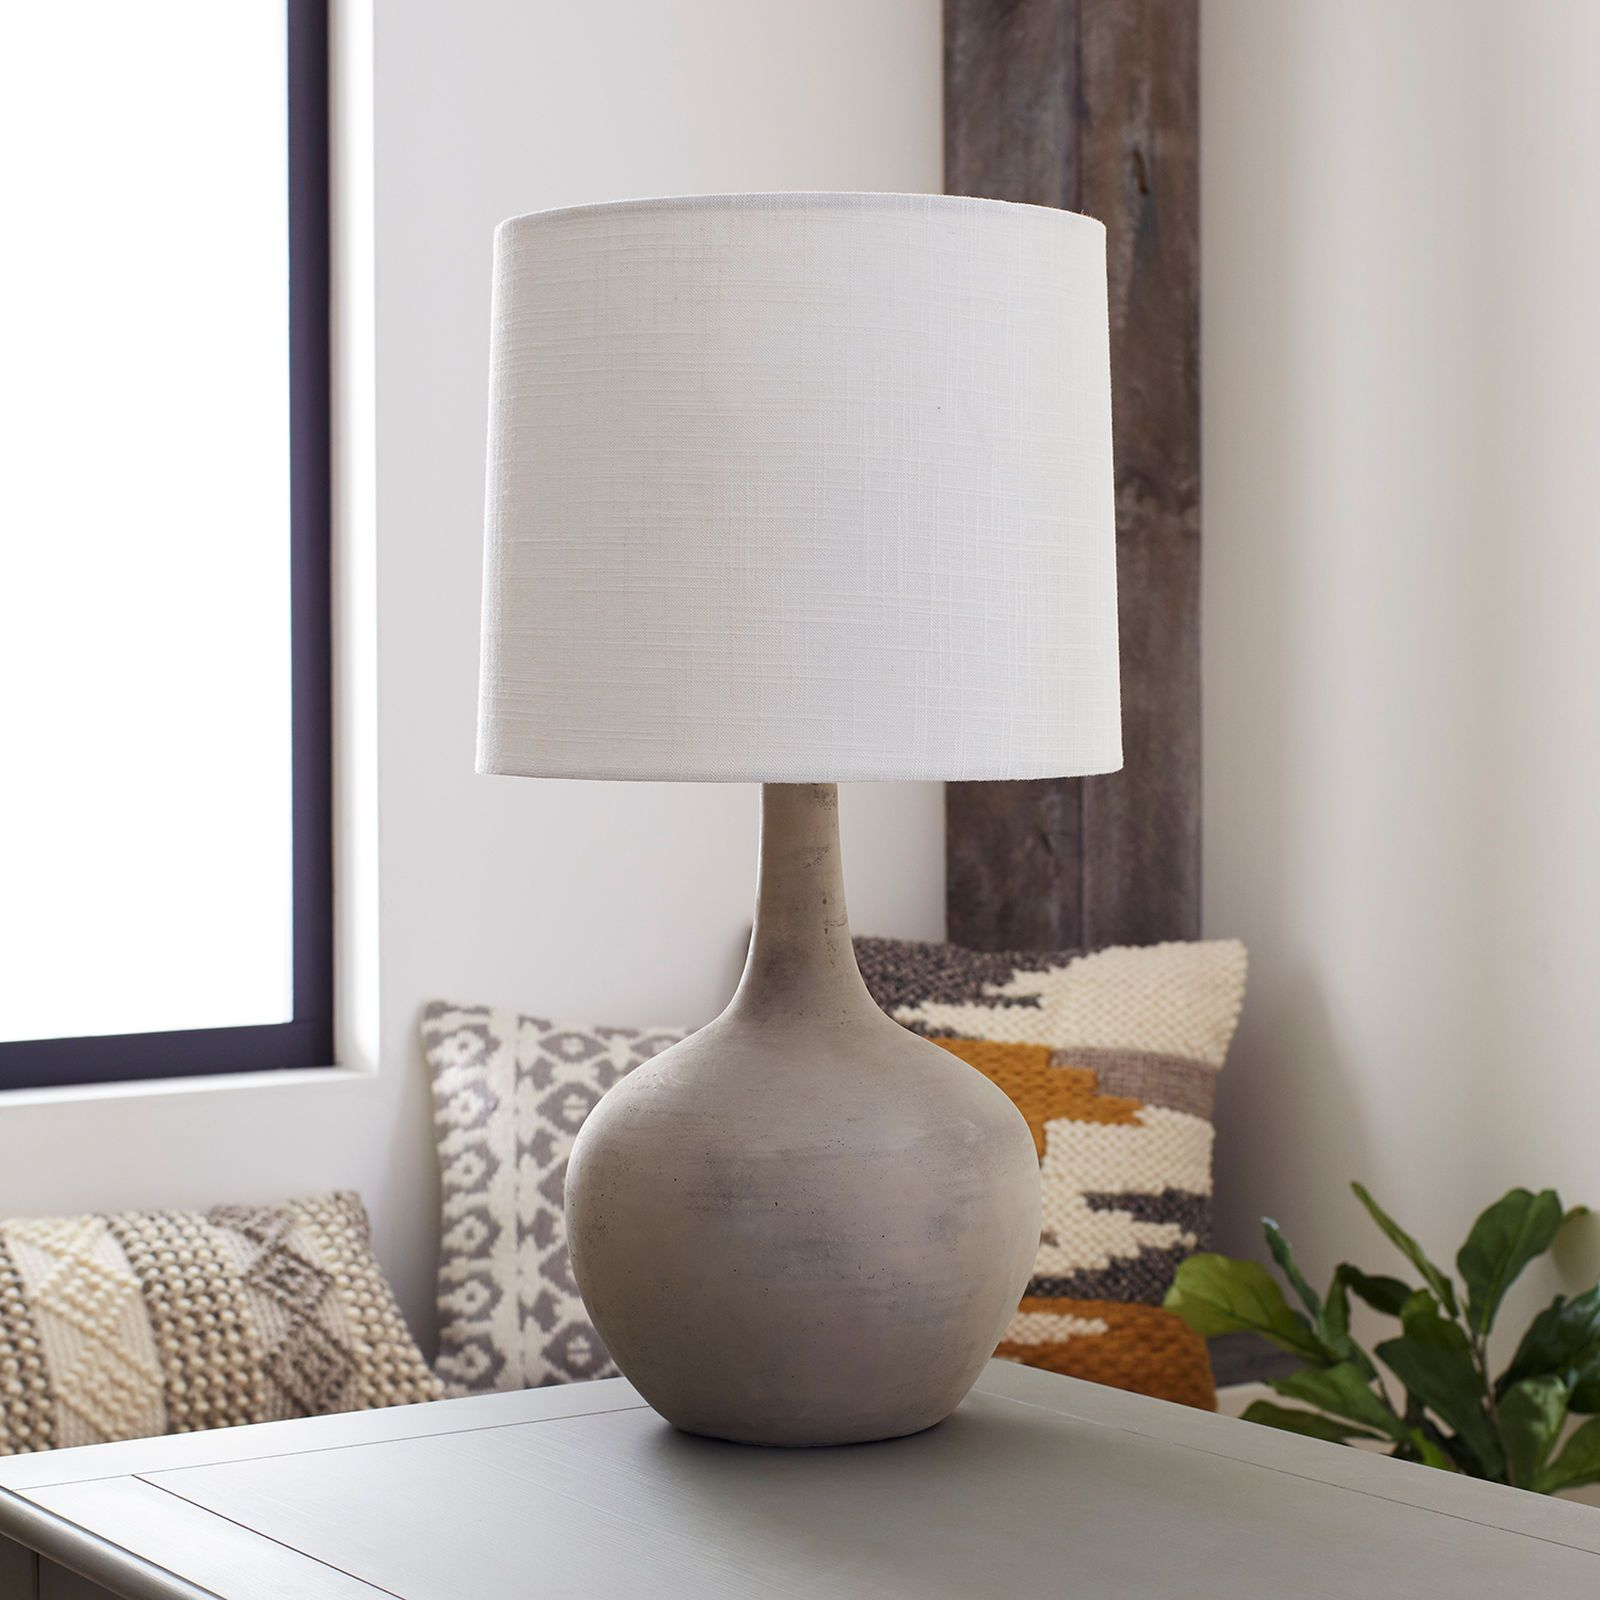 magnolia home ashby large cement table lamp linzee living pier one accent lamps imports chinese shades with hidden chairs garden umbrella sisal runner modern dining room sets cool